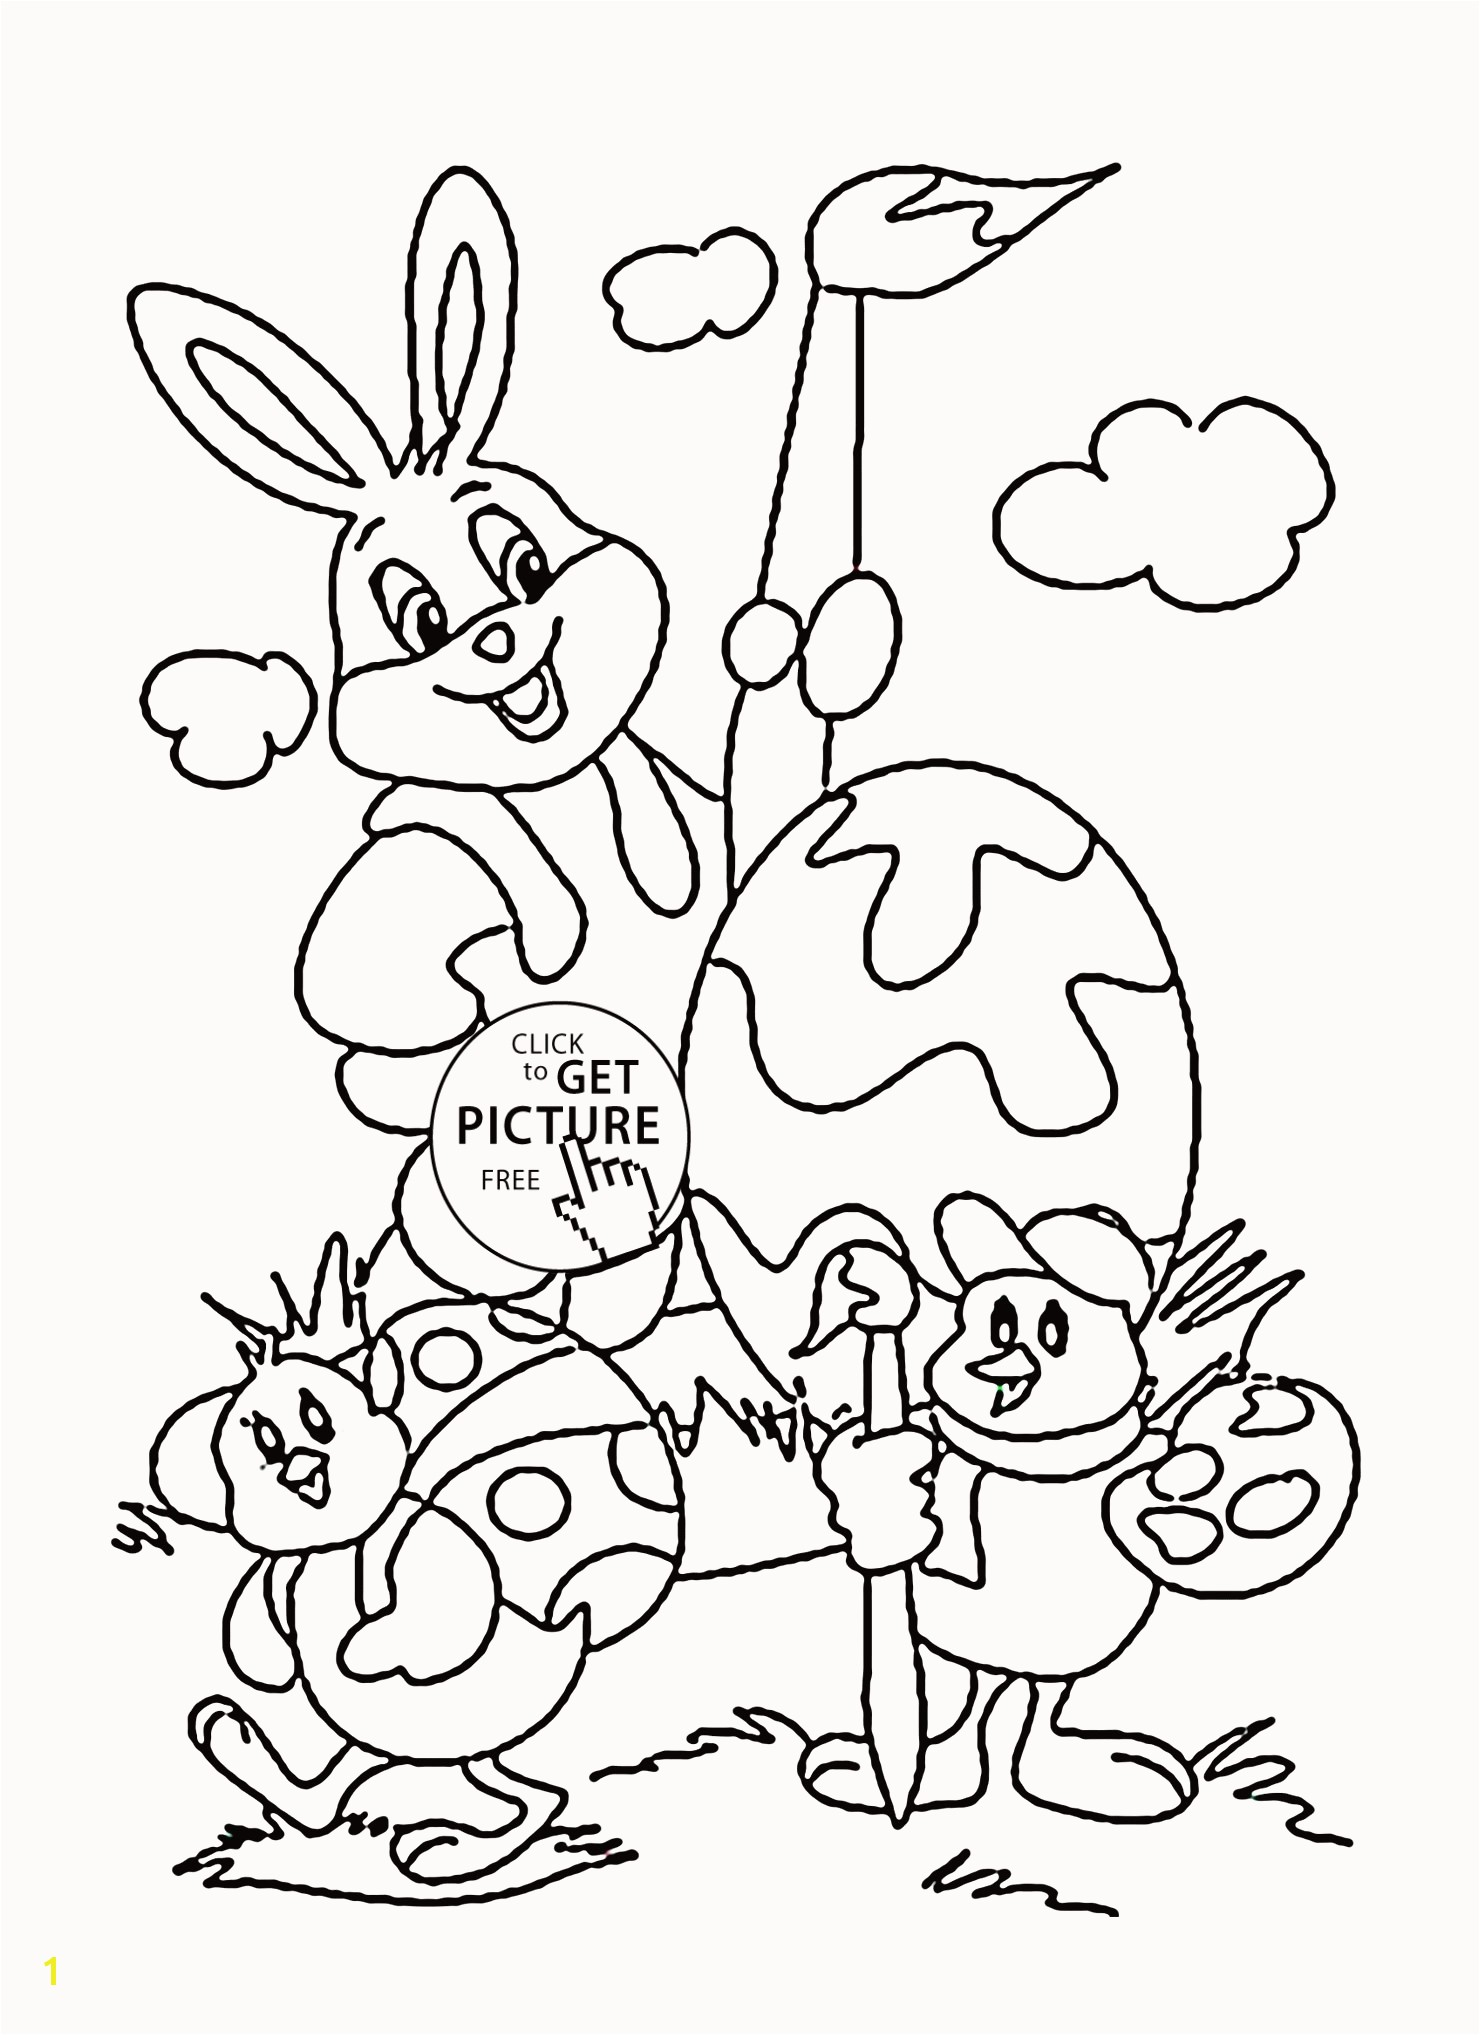 Kids Coloring Pages Bunny Best Fresh Hello Kitty Print Outs Coloring Pages Kids Coloring